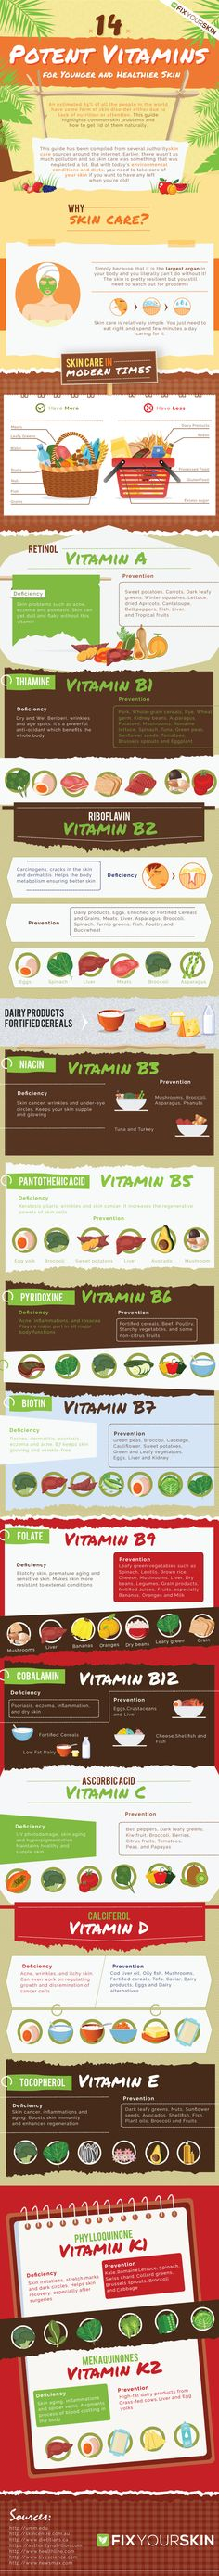 Your comprehensive vitamin guide with infographic for healthier and younger looking skin from the skin health experts at Fix Your Skin